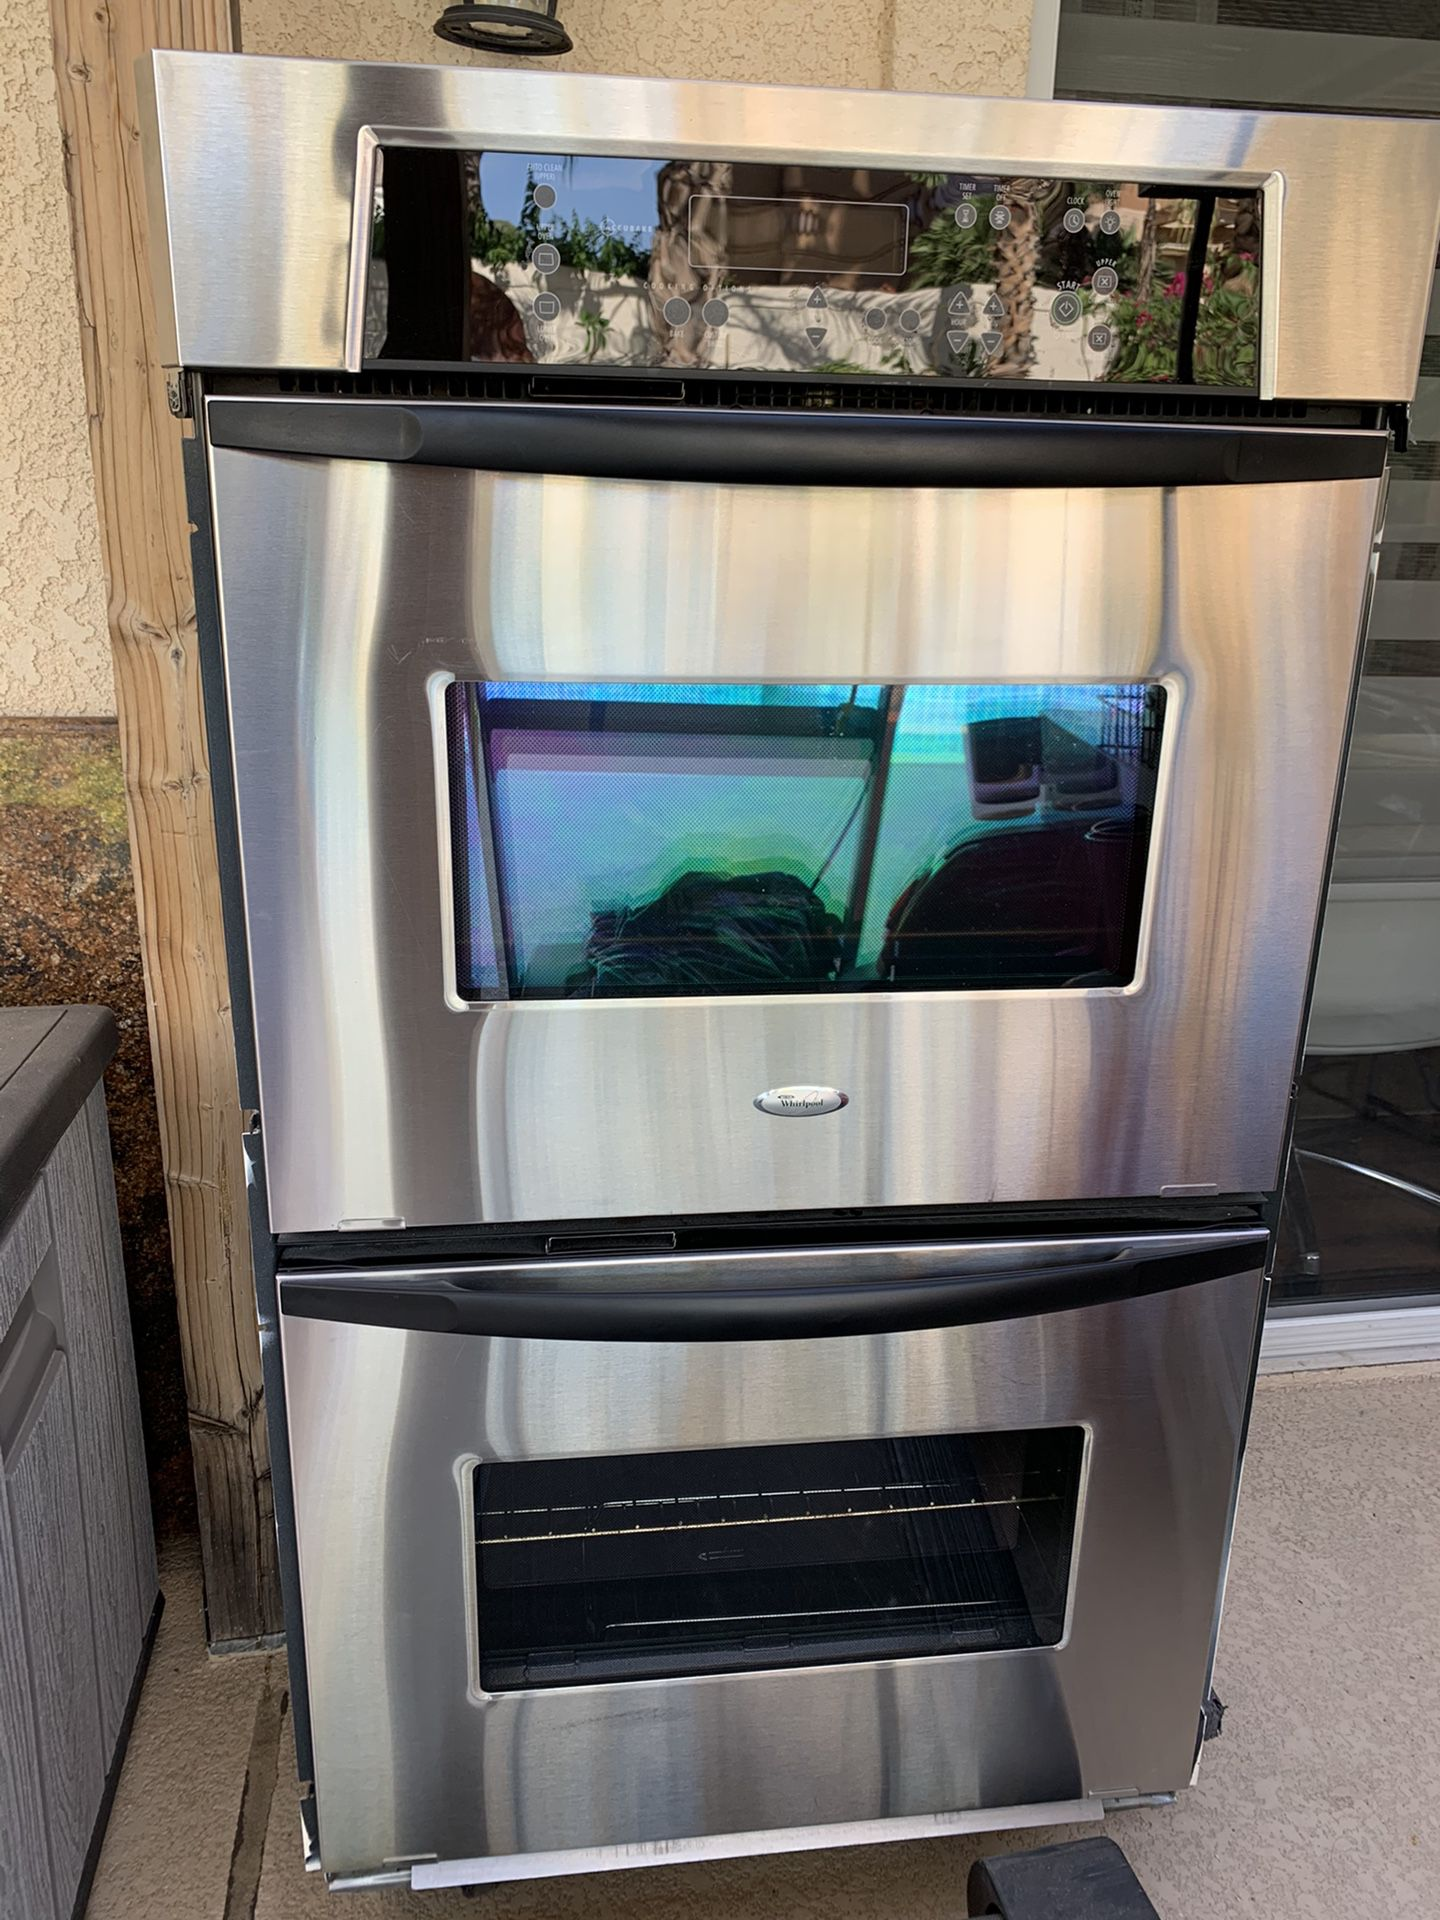 Stainless Steel Double Ovens